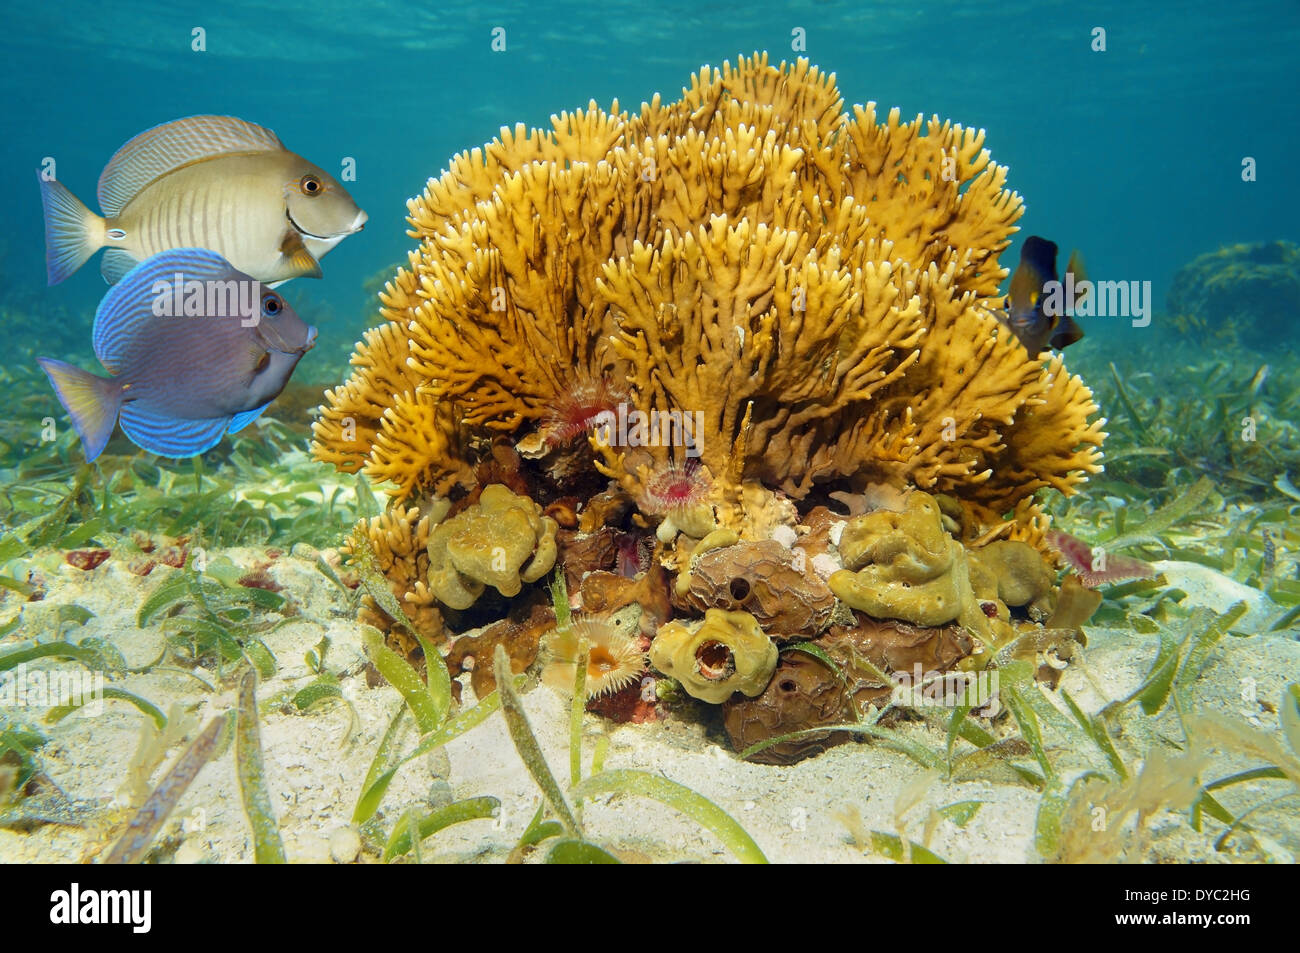 Seabed with branching fire coral, Millepora alcicornis, and tropical fish in the Caribbean sea - Stock Image